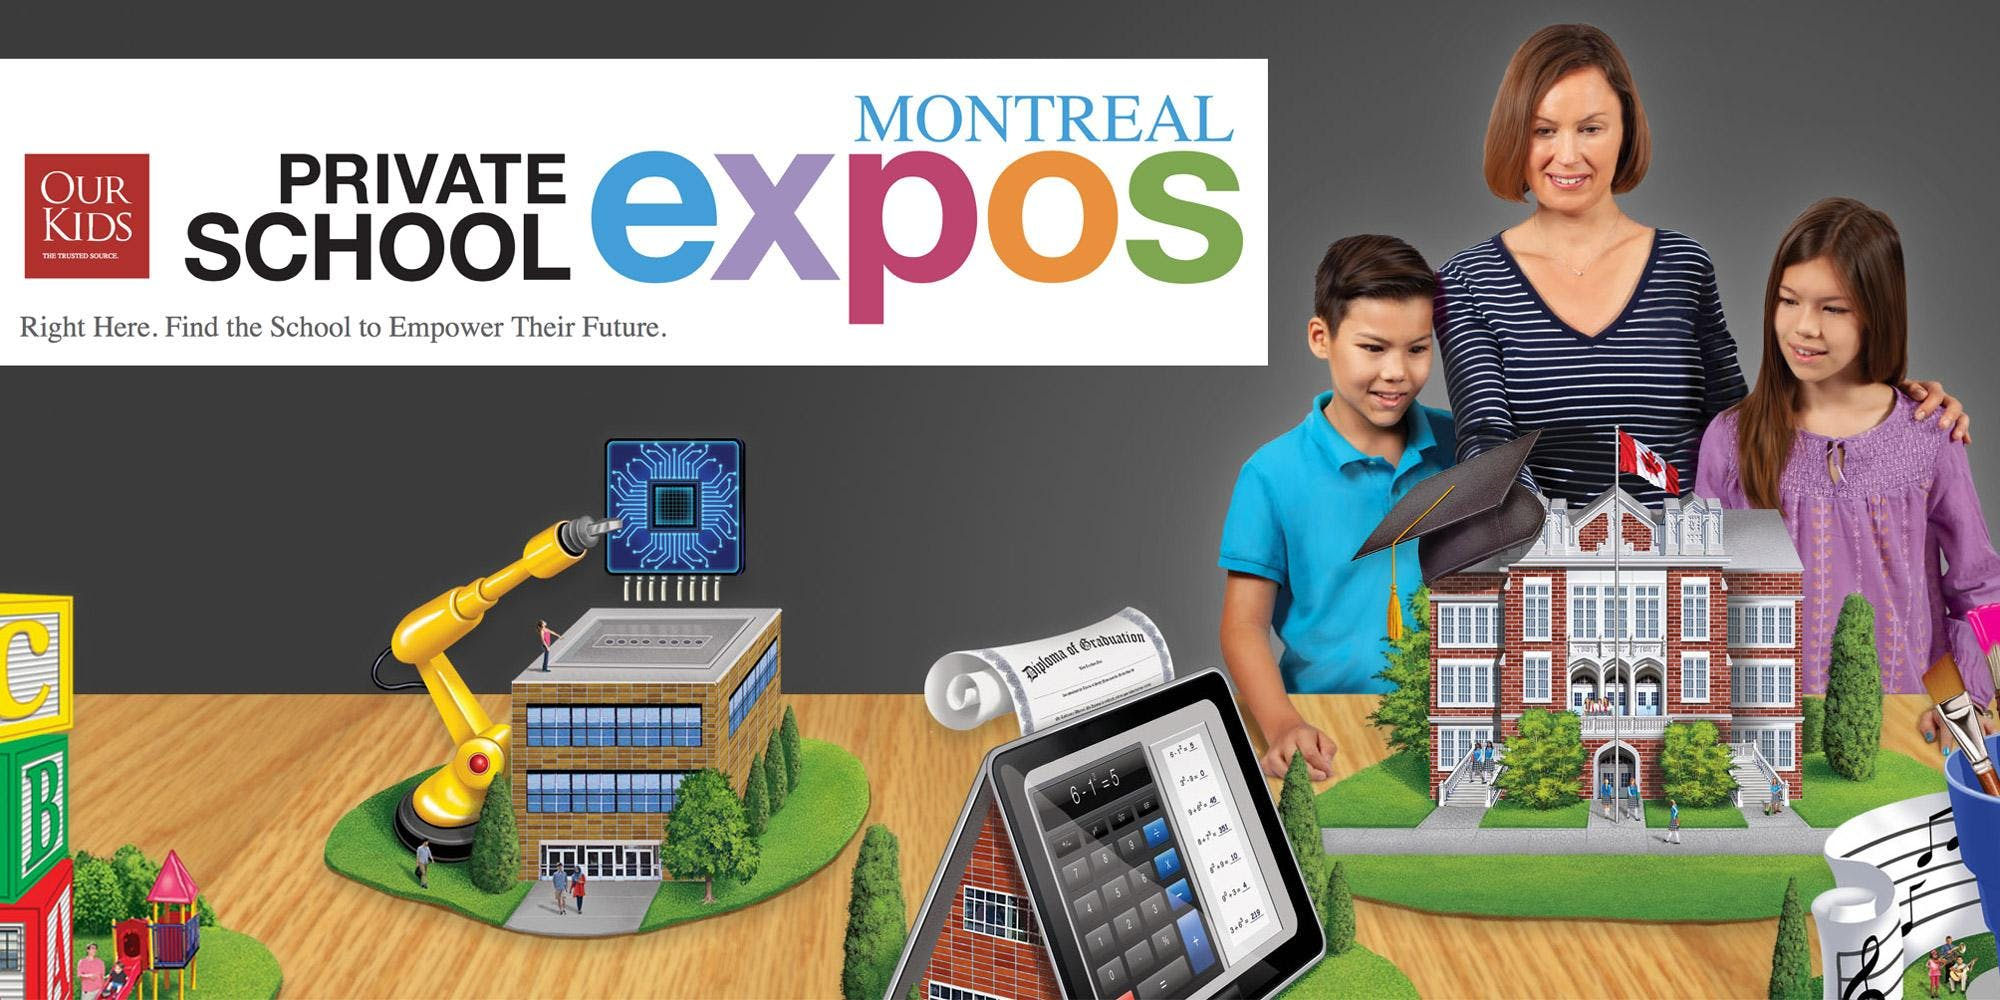 OUR KIDS Montreal Private School Expo & Information Day